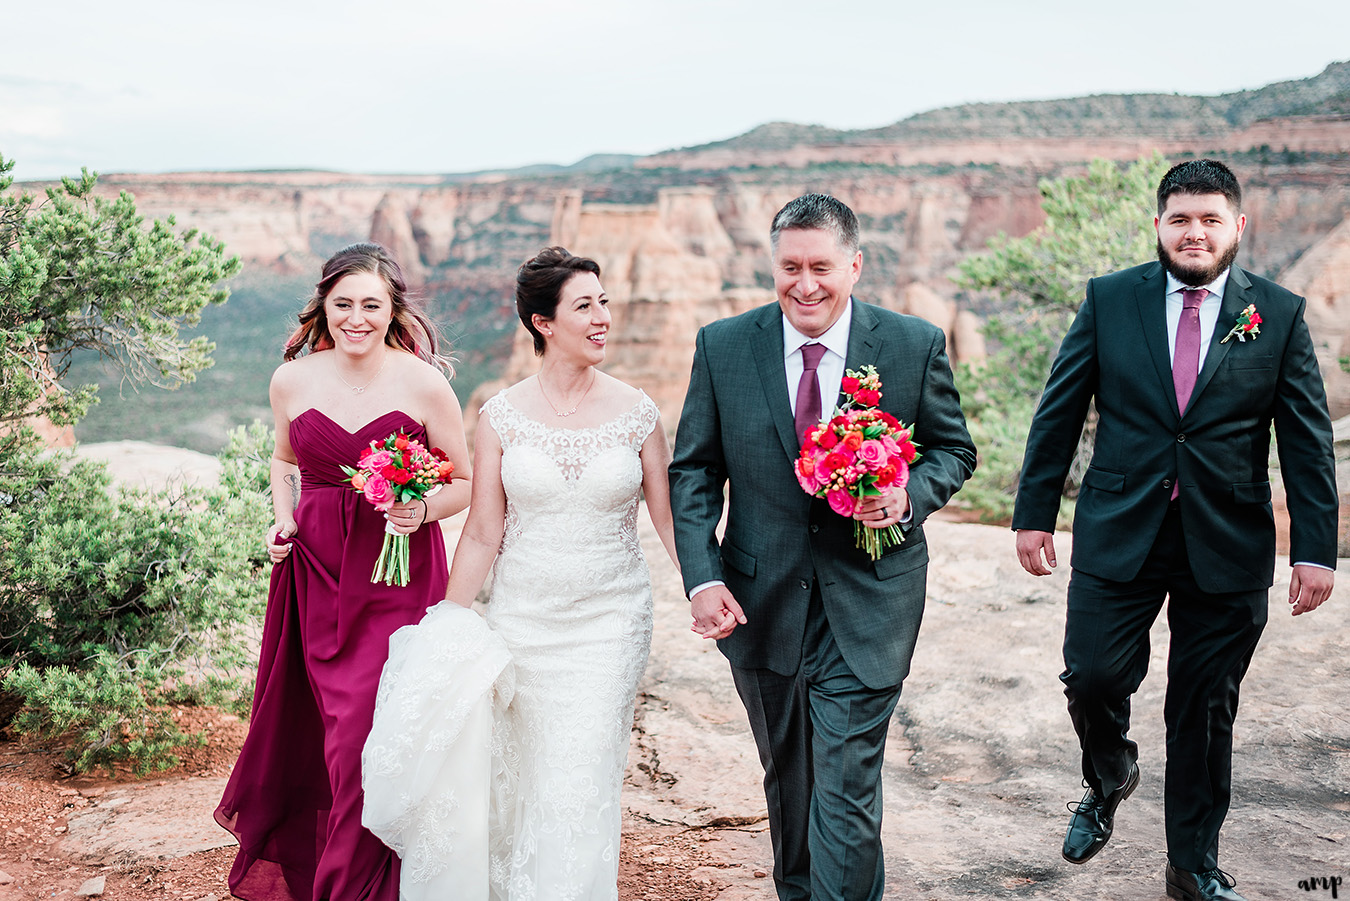 Wedding party walking through the Colorado National Monument in Grand Junction